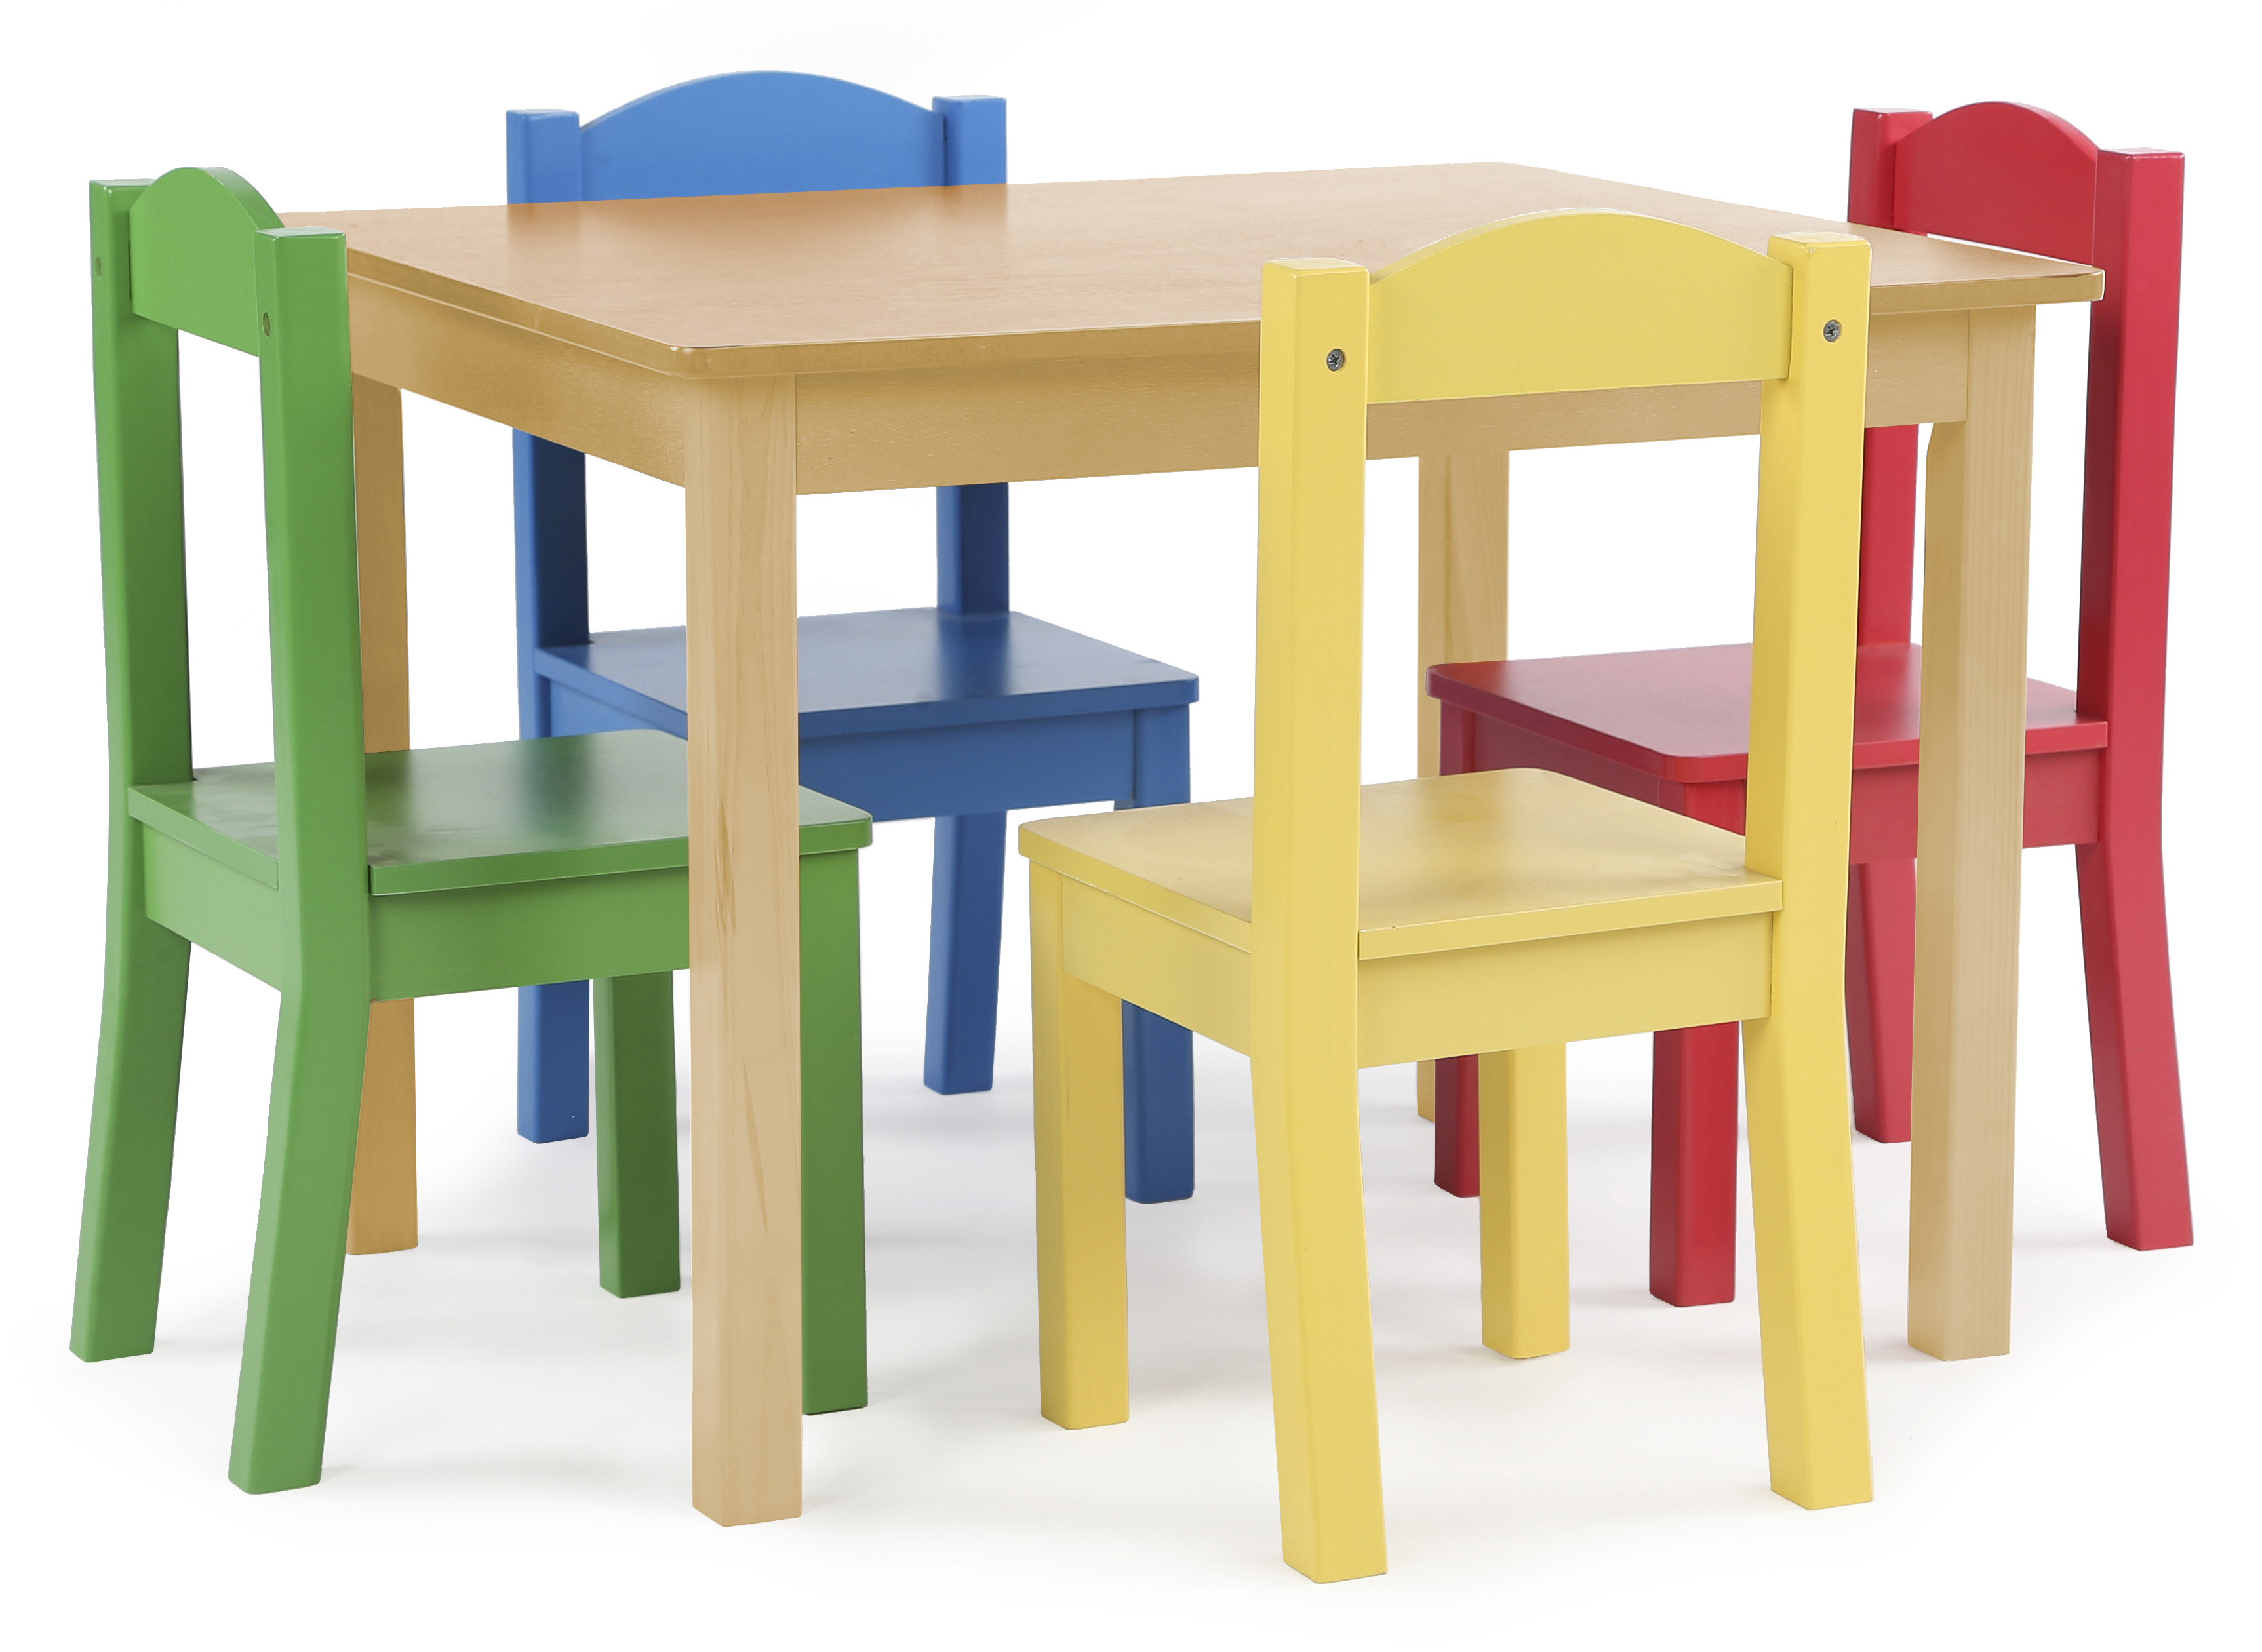 Kids Wooden Chair Tot Tutors Kids Wood Table And 4 Chairs Set Natural